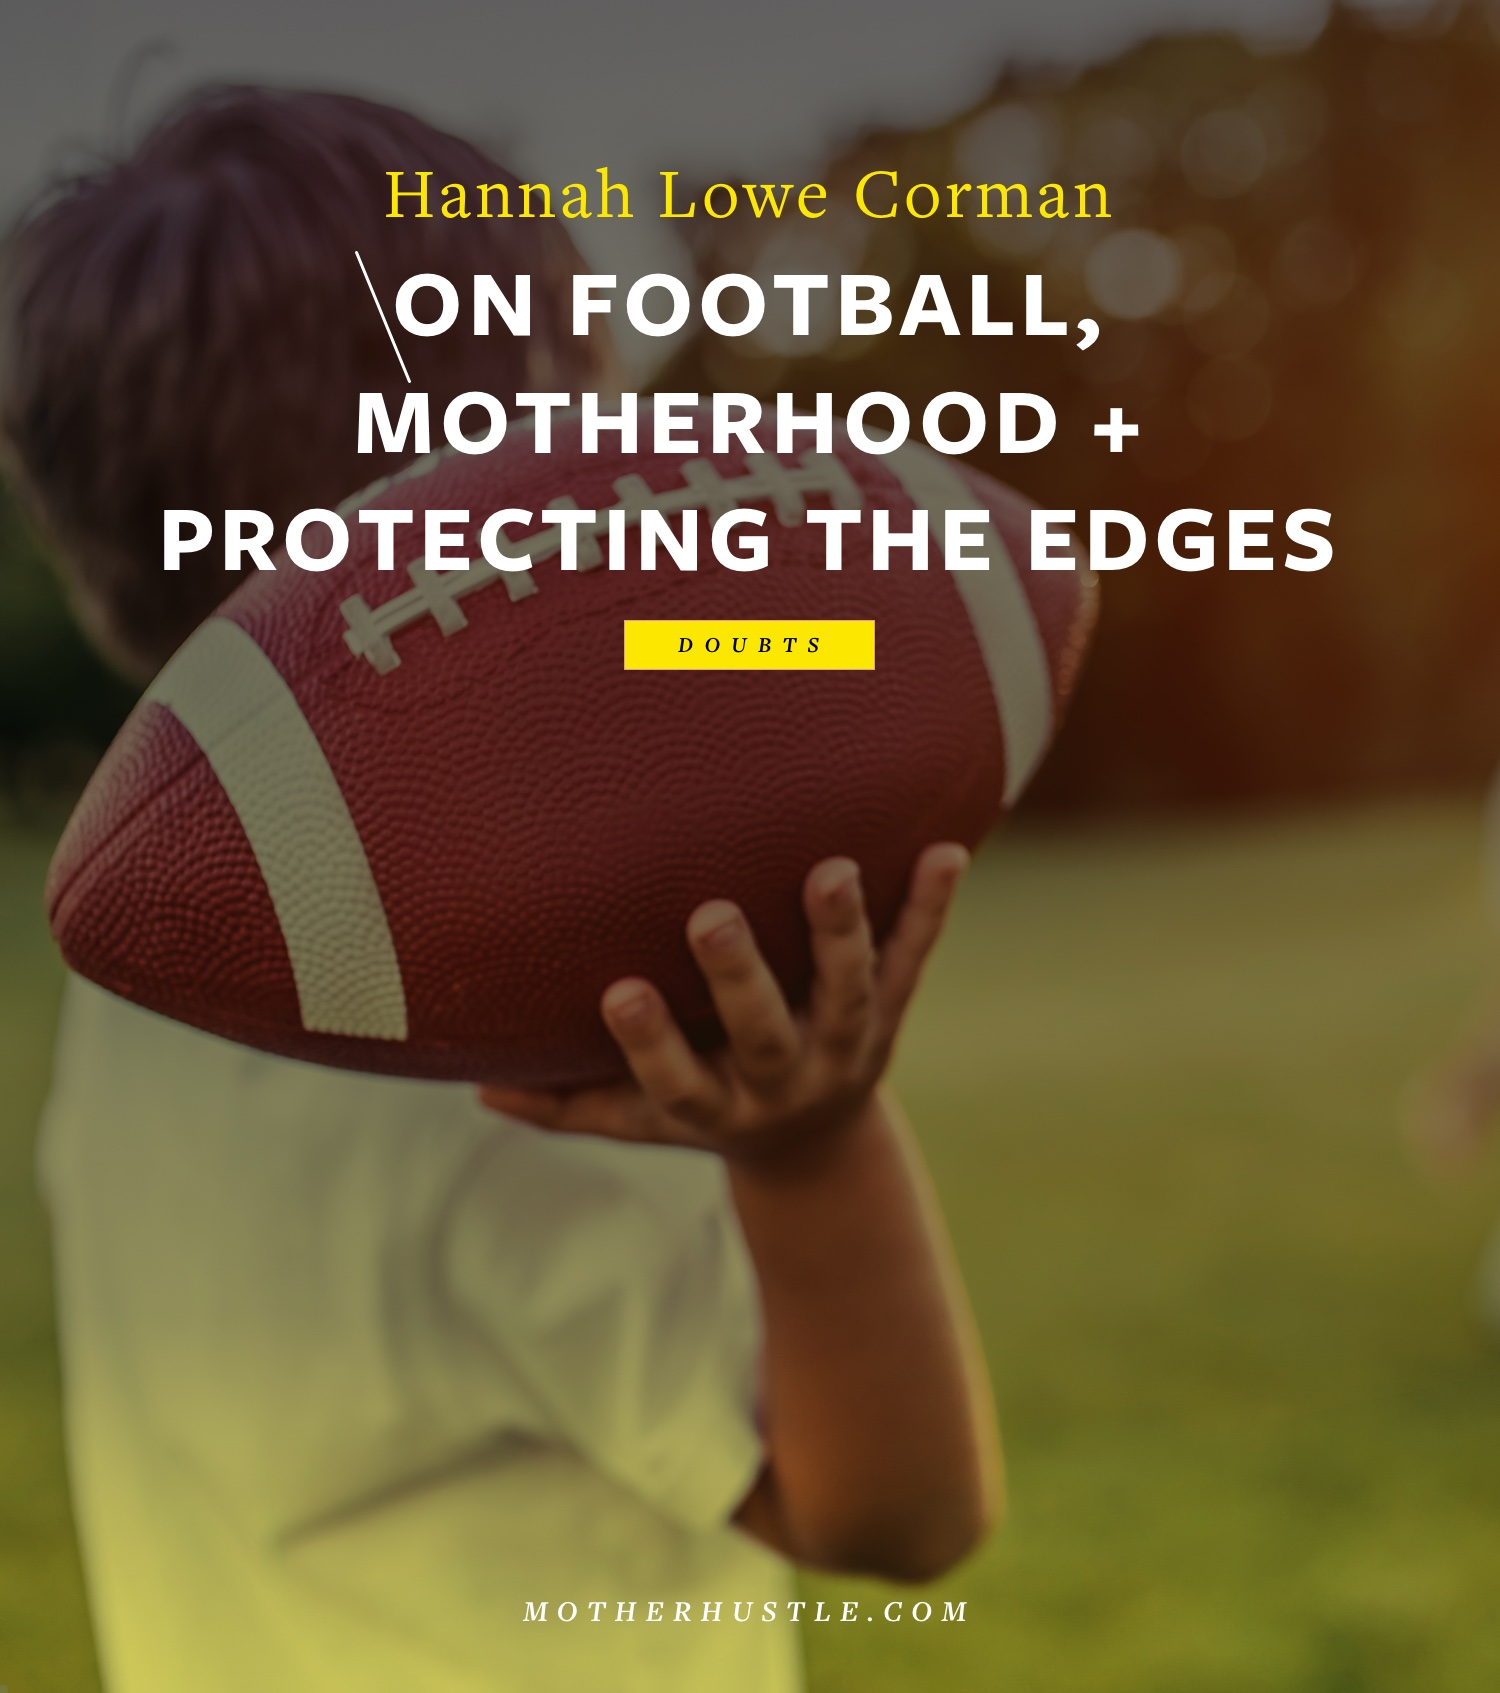 On Football, Motherhood & Protecting the Edges- by Hannah Lowe Corman for MotherHustle